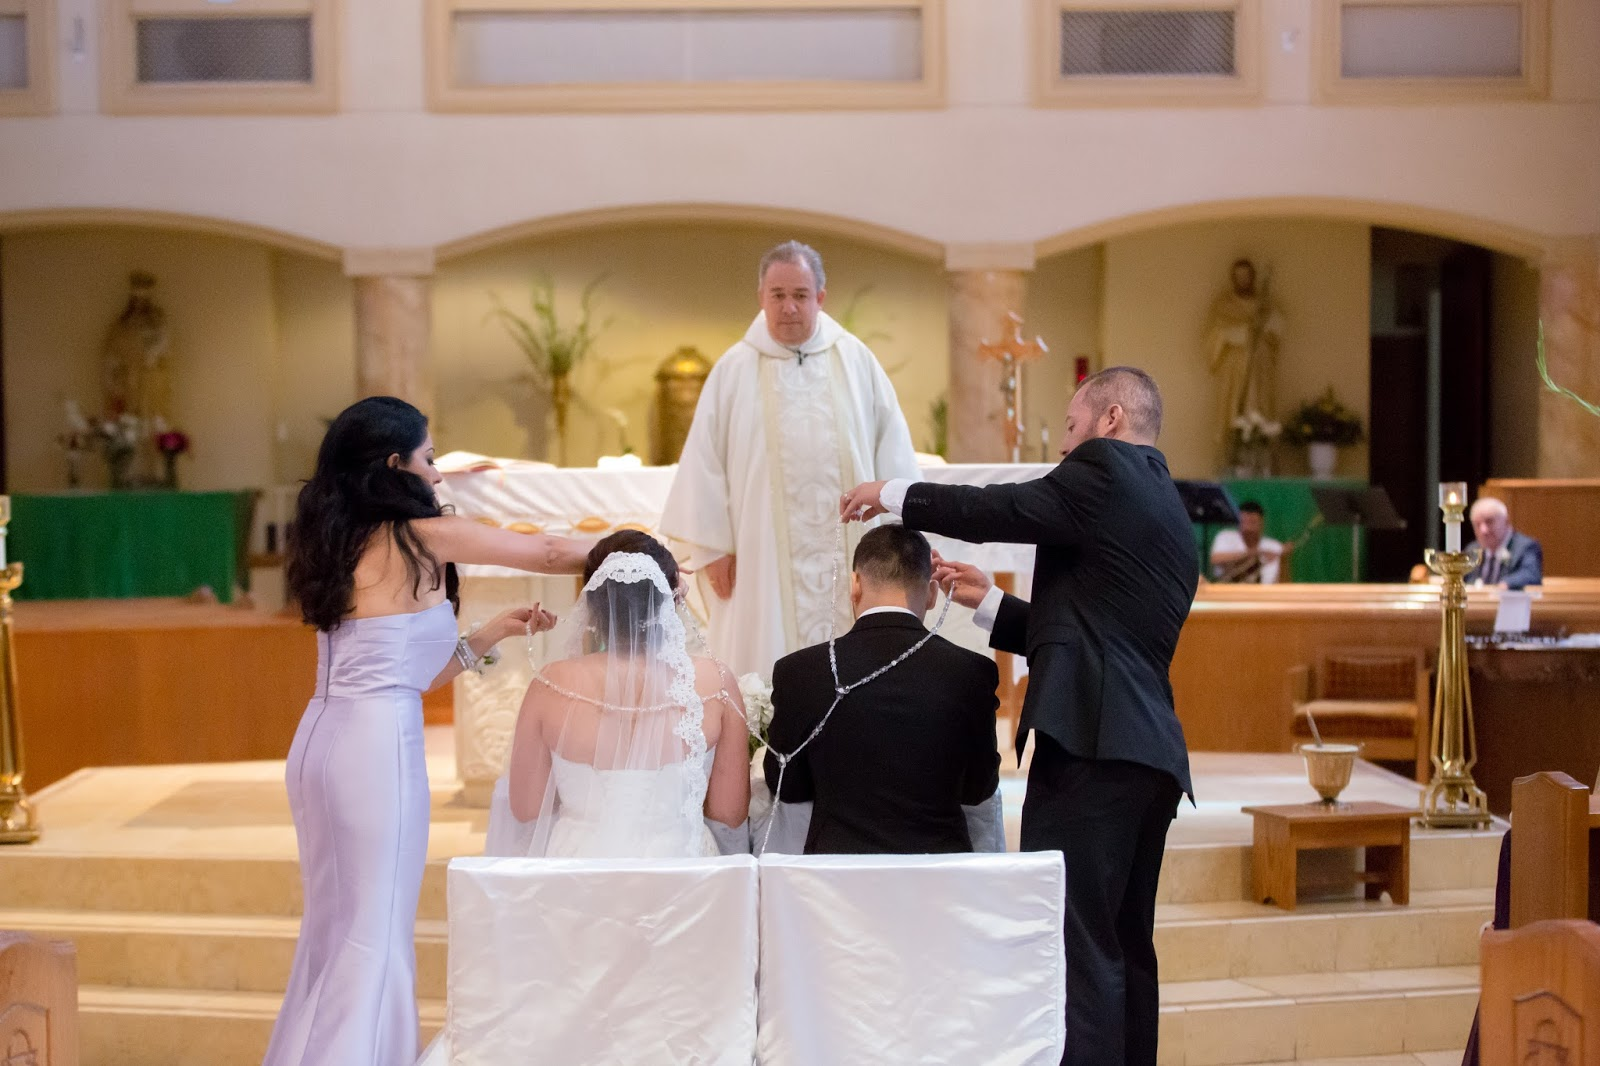 Priest Blessing Bride and Groom with Best Man's and Maid of Honor's Help